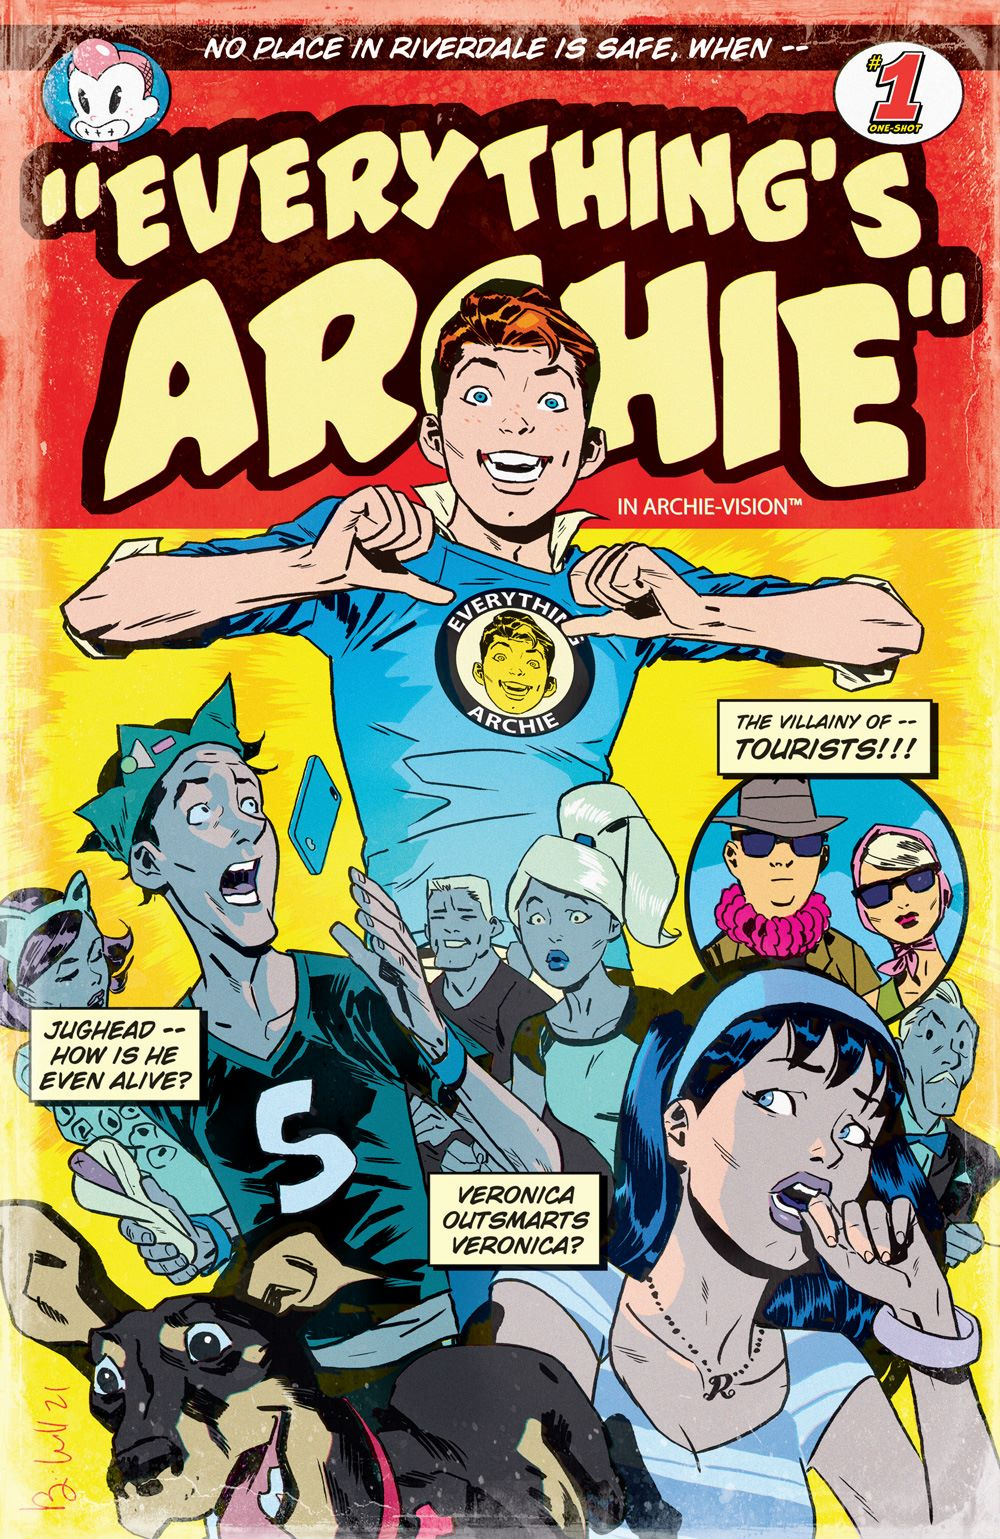 EverythingsArchie_01_CoverB_Caldwell ComicList Previews: ARCHIE 80TH ANNIVERSARY EVERYTHING'S ARCHIE #1